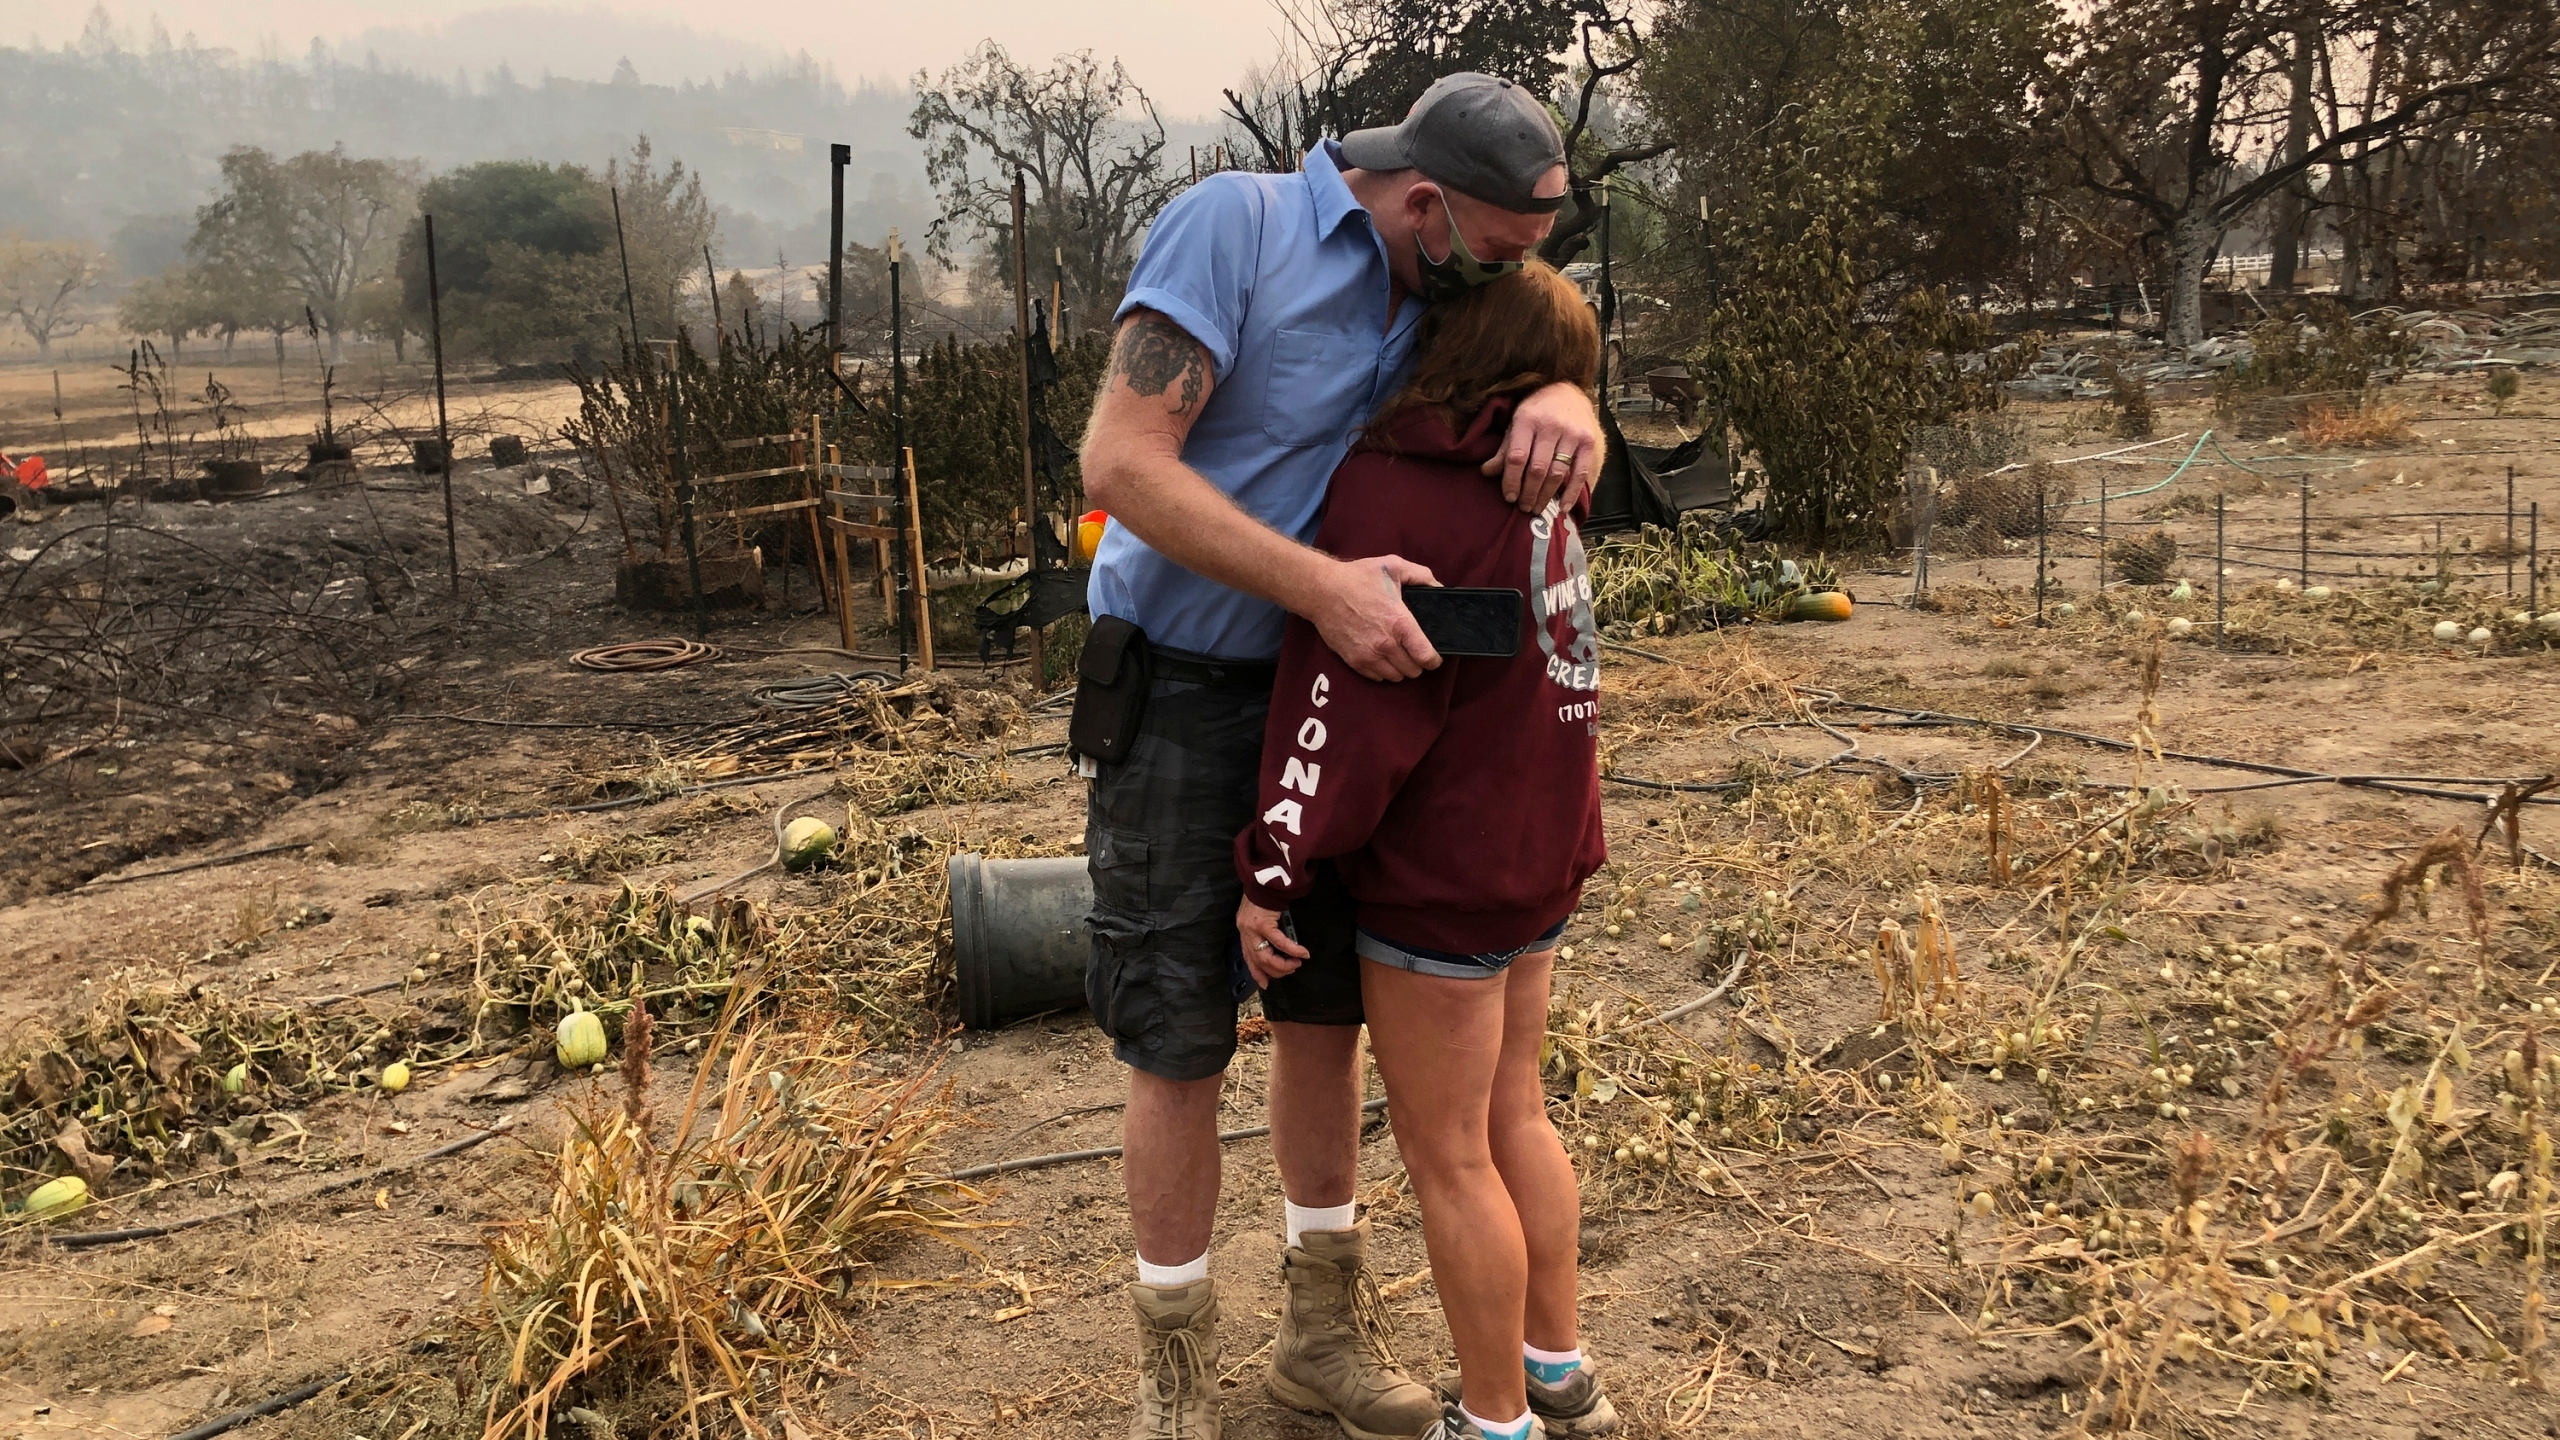 """Kevin Conant and his wife, Nikki, hug after looking at the debris of their burnt Santa Rosa home and business """"Conants Wine Barrel Creations"""" on Sept. 30, 2020, after the Glass/Shady fire completely engulfed it. (Haven Daley / Associated Press)"""